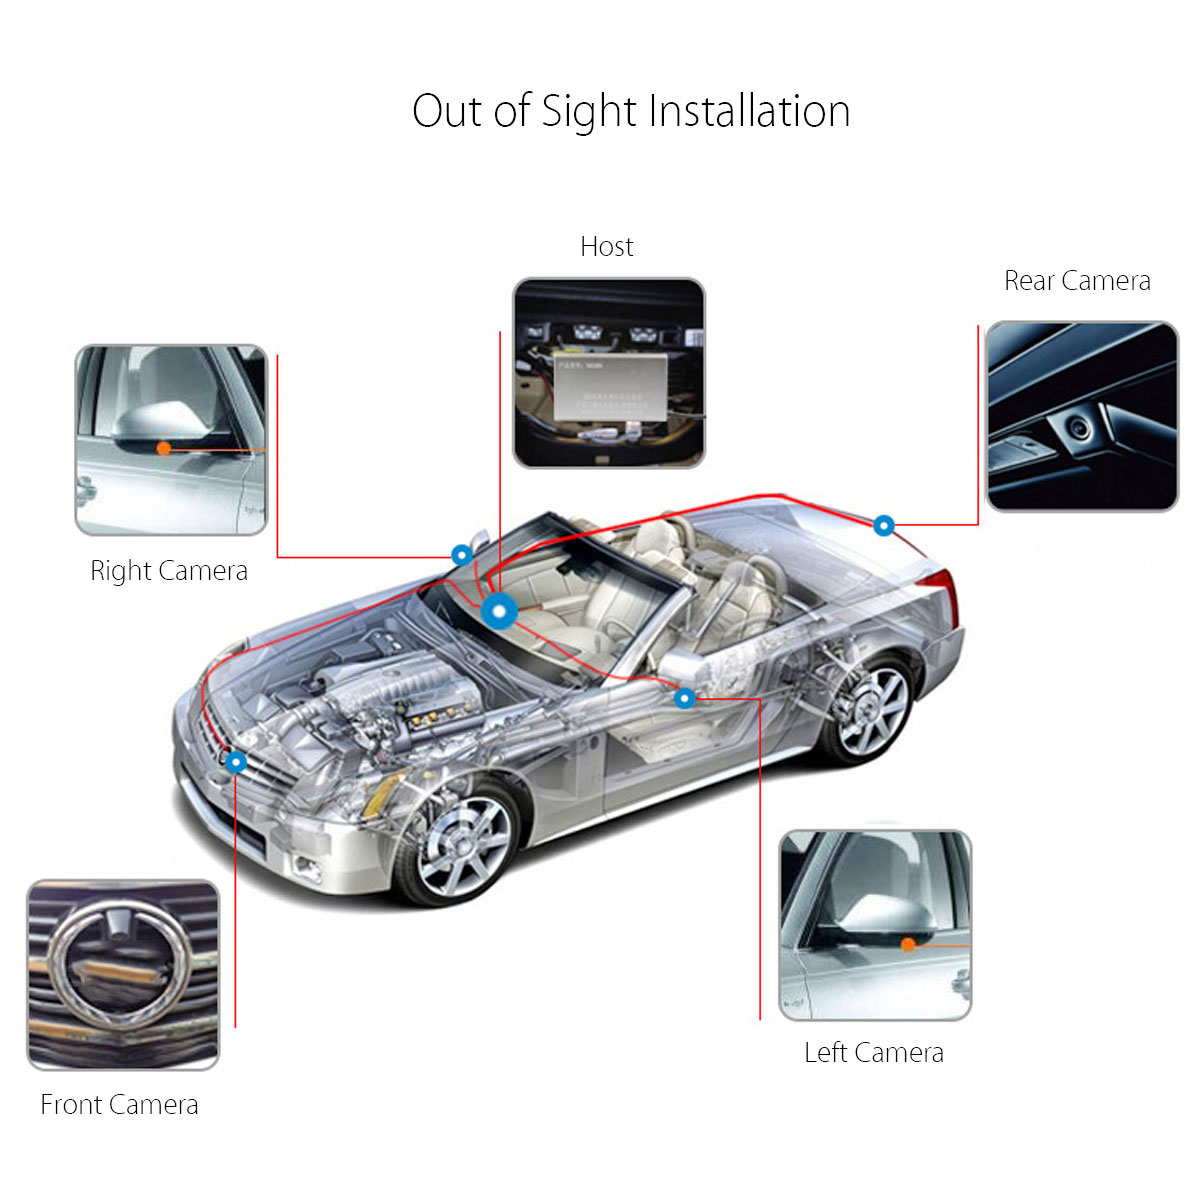 360 Degree Bird View Panoramic Car Safety System with 4 Cameras, Car DVR Recording, Parking Rear View